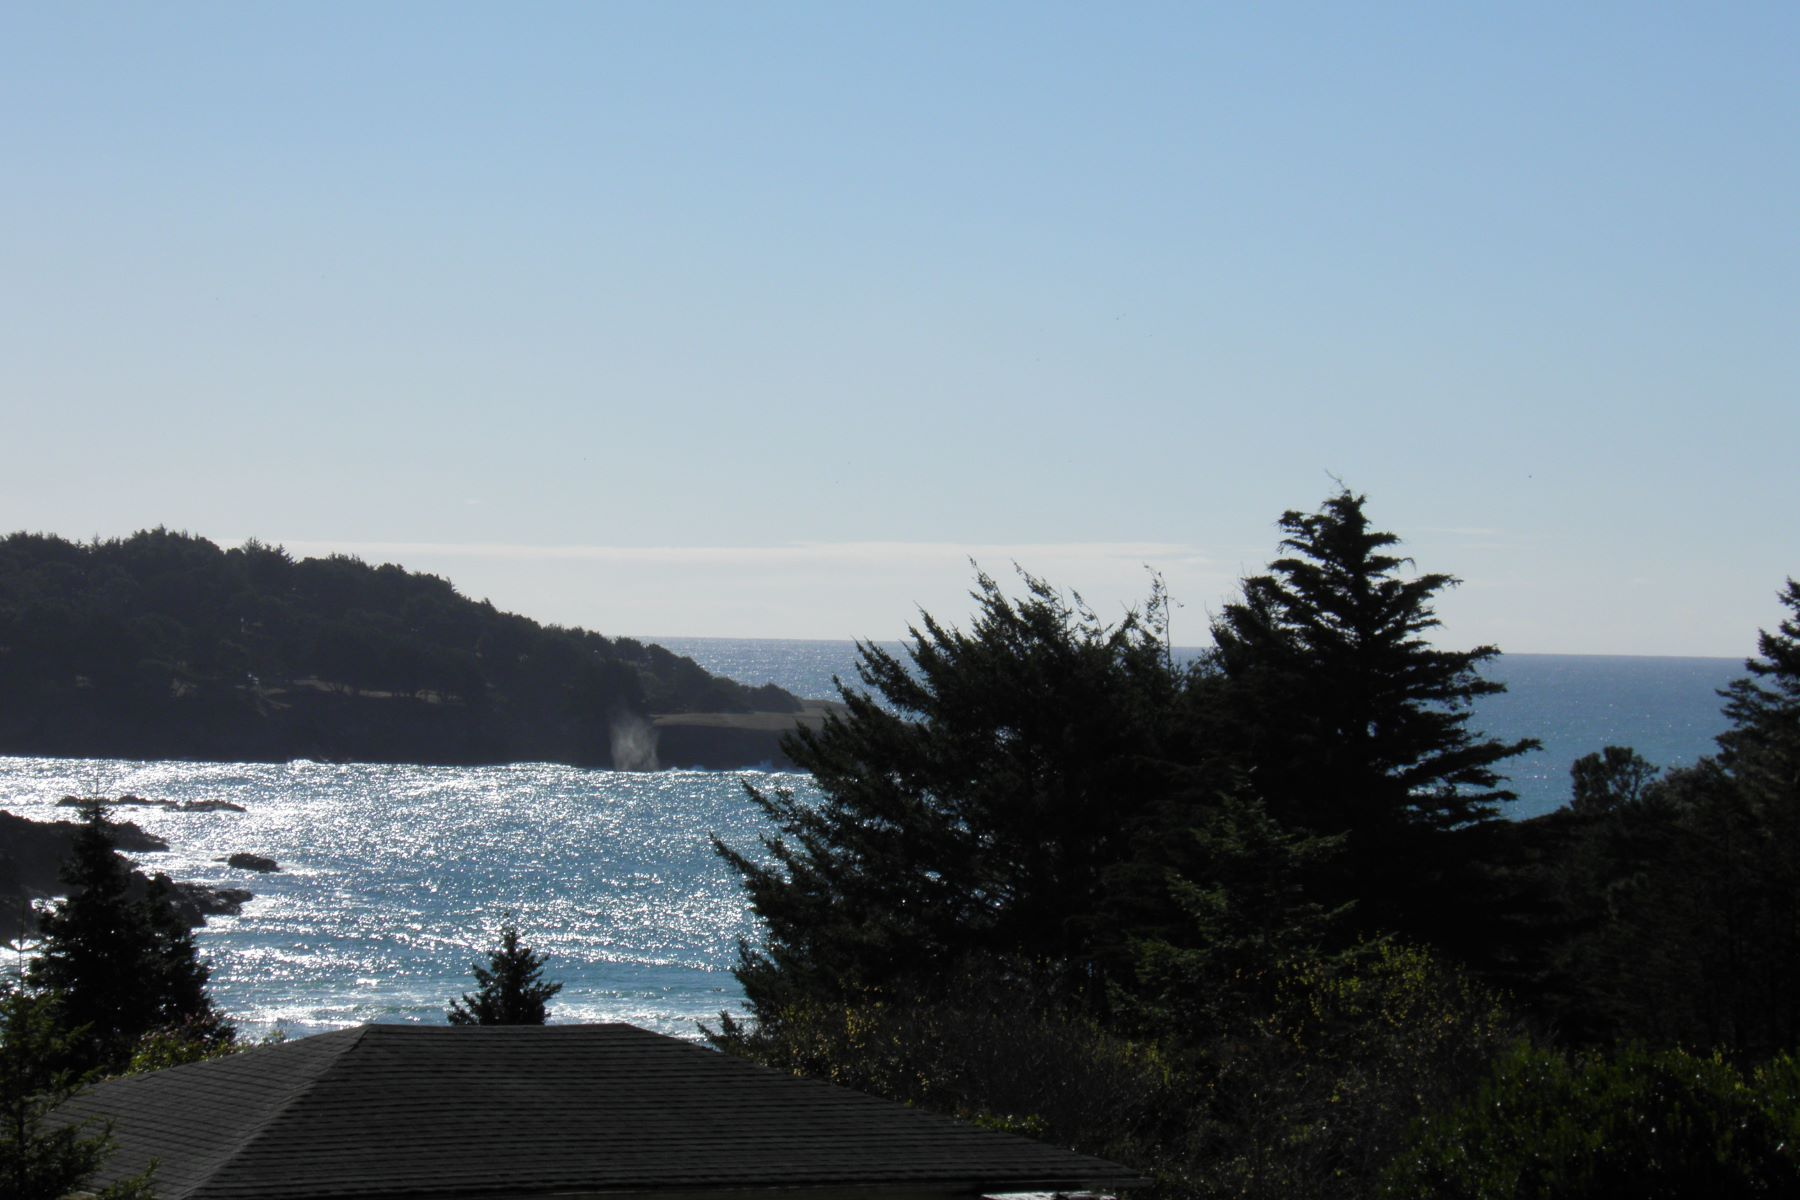 Single Family Home for Sale at Coastal Charm! 44711 Pine Street, Mendocino, California, 95460 United States